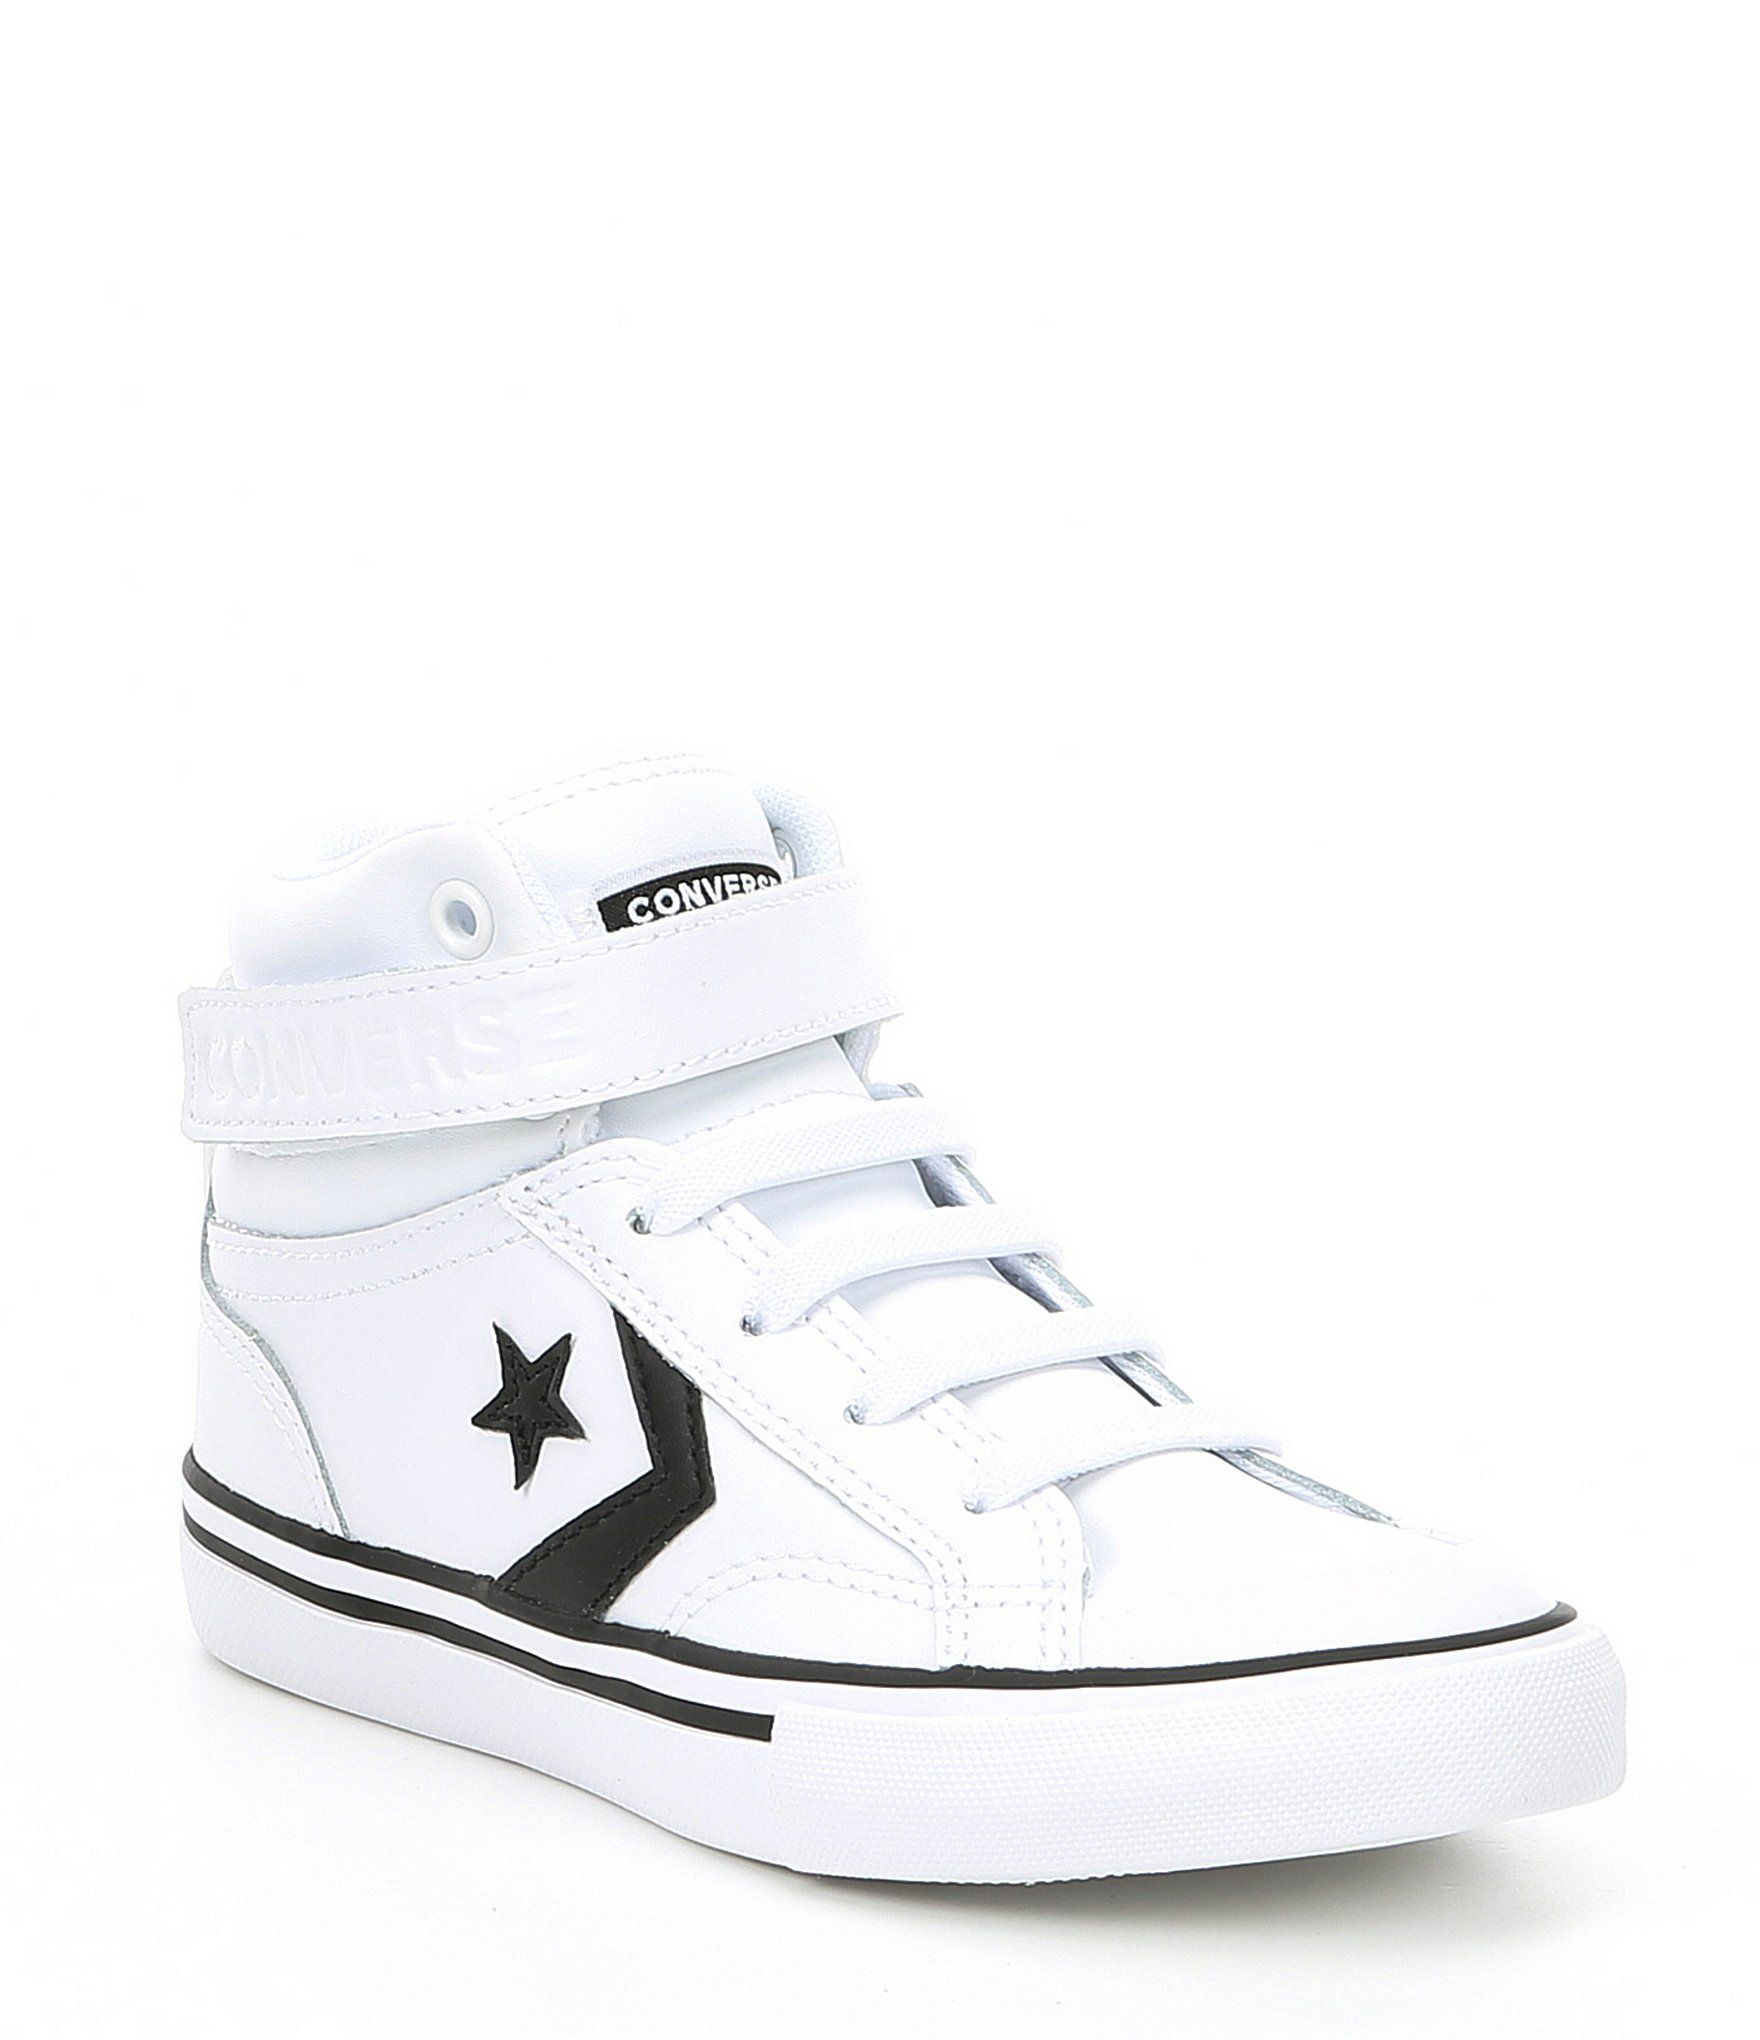 Converse Boys' Chuck Taylor All Star Pro Blaze Hi Top Sneaker - White/Black/White 5M Youth #whiteallstars